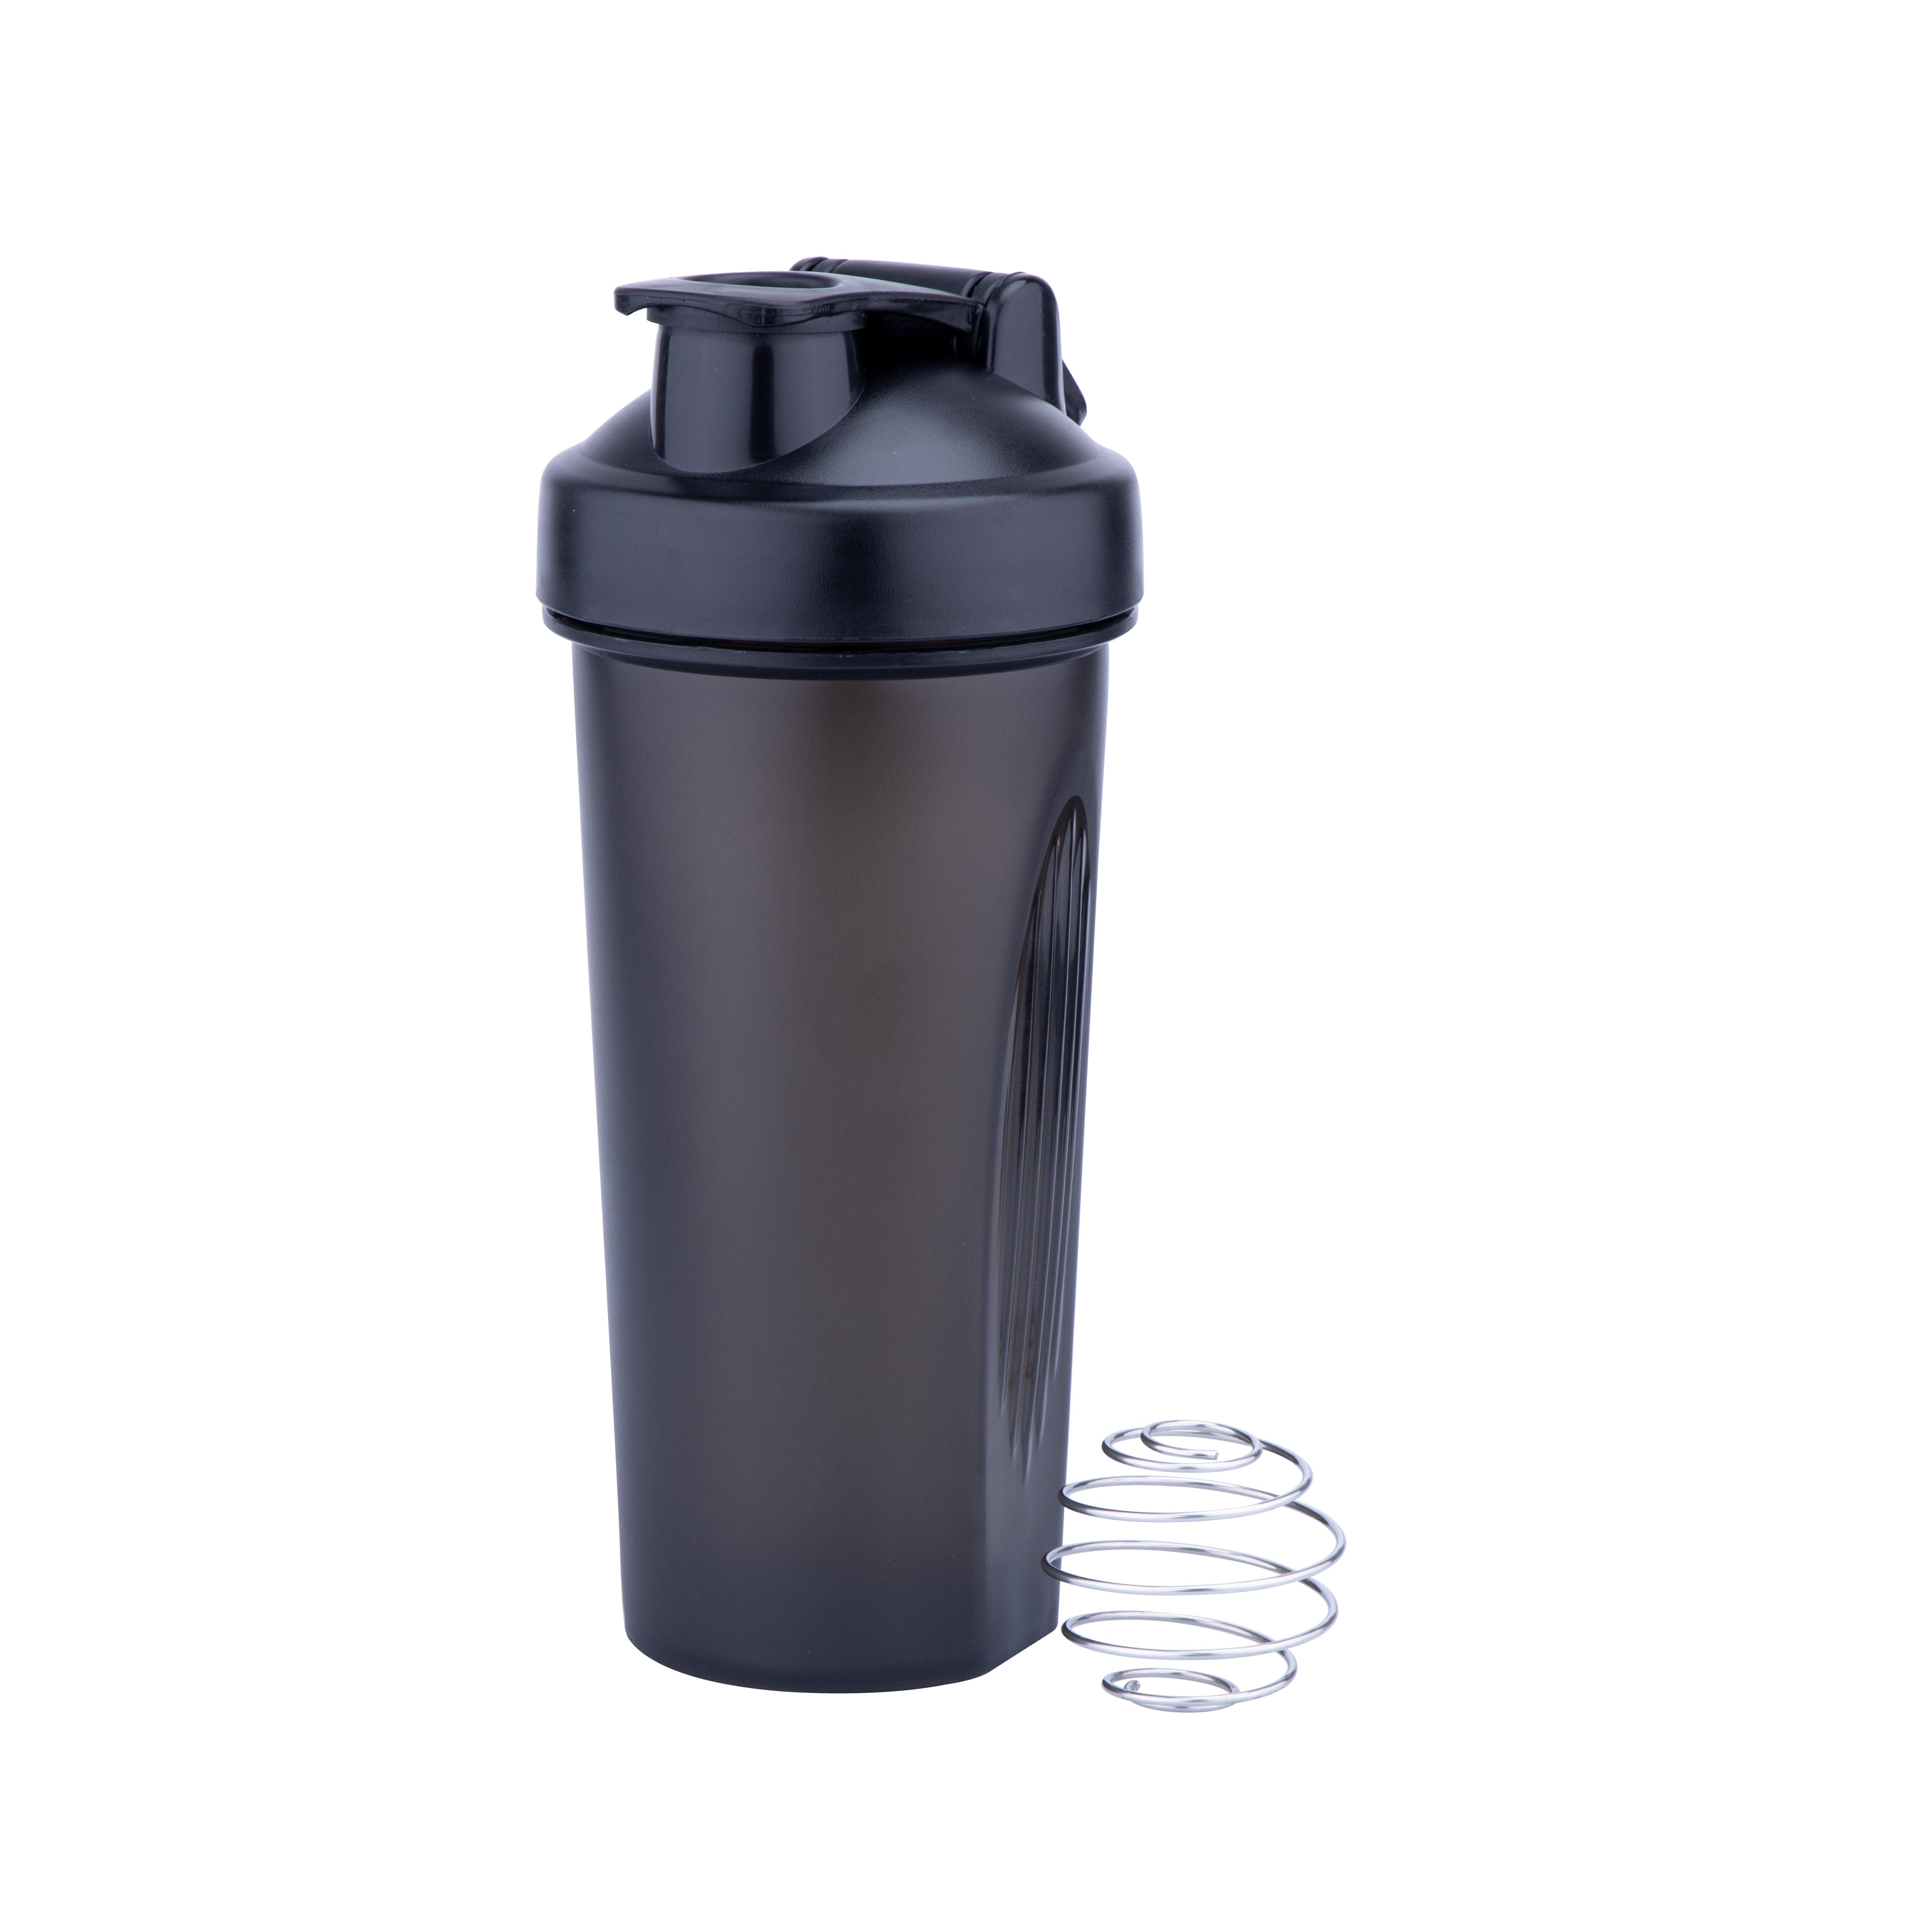 Wholesale Classic Loop Top Shaker Sports Water <strong>Bottle</strong>, Recycled Plastic BPA Free Gym Protein Shaker <strong>Bottle</strong>